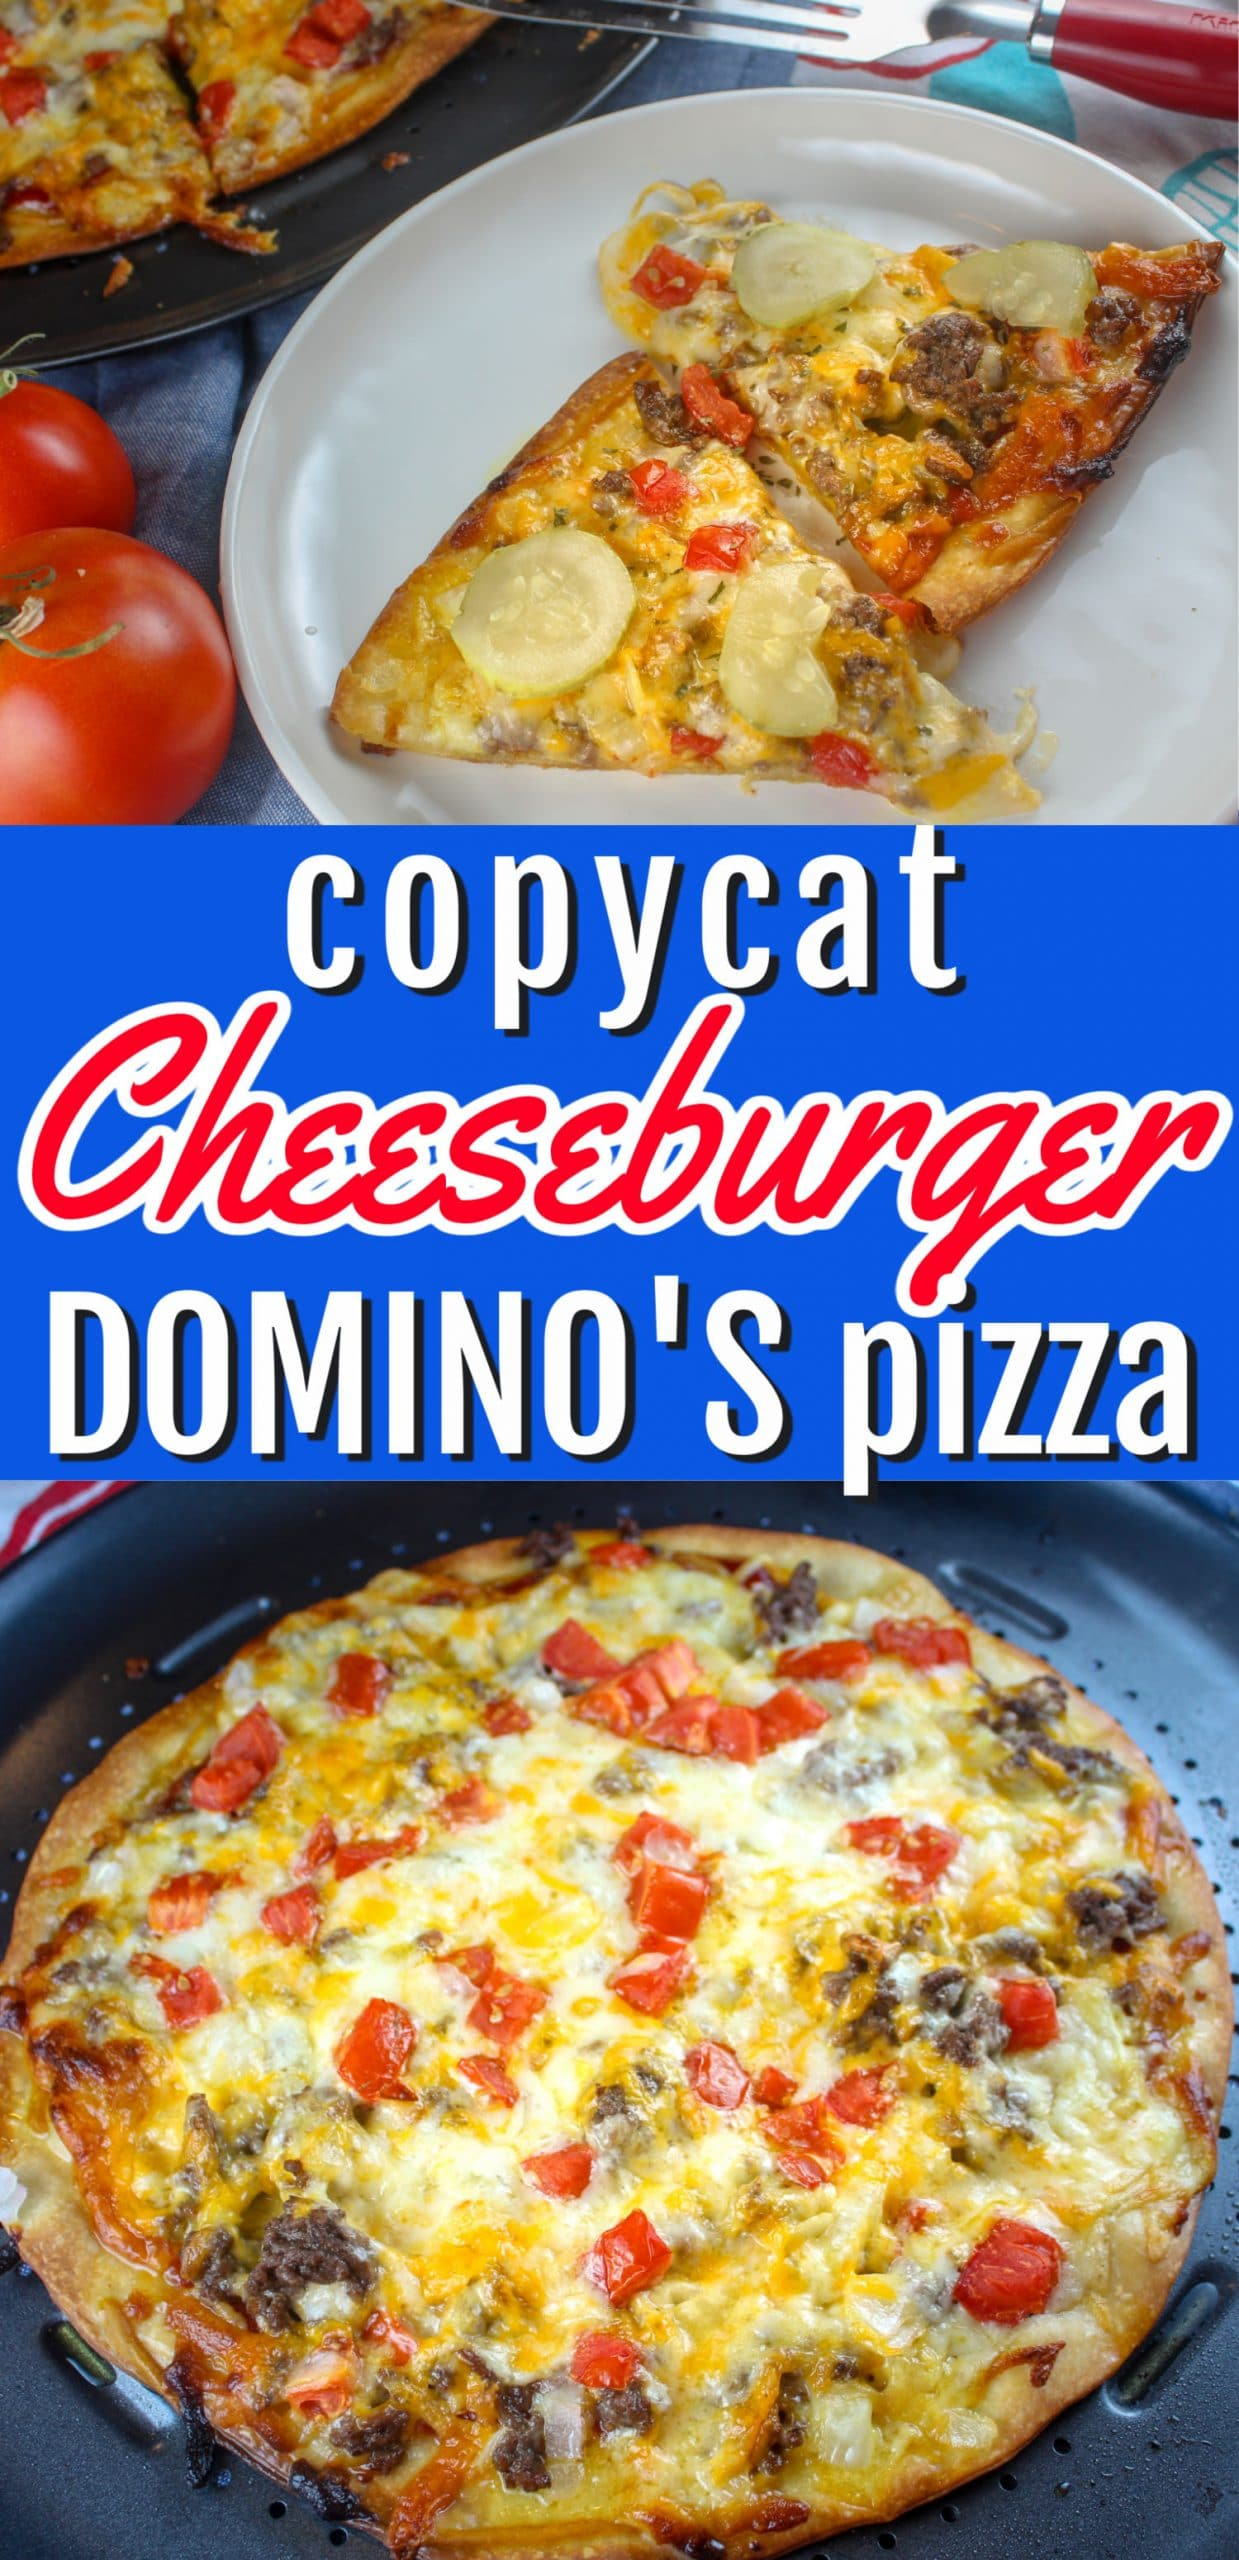 If you've watched TV in the past month - you've seen the commercials for Domino's two new pizzas - the Cheeseburger and Chicken Taco Pizzas. The Cheeseburger Pizza was calling my name and I had to try it. Loved it! So then - I had to make it for you guys! via @foodhussy